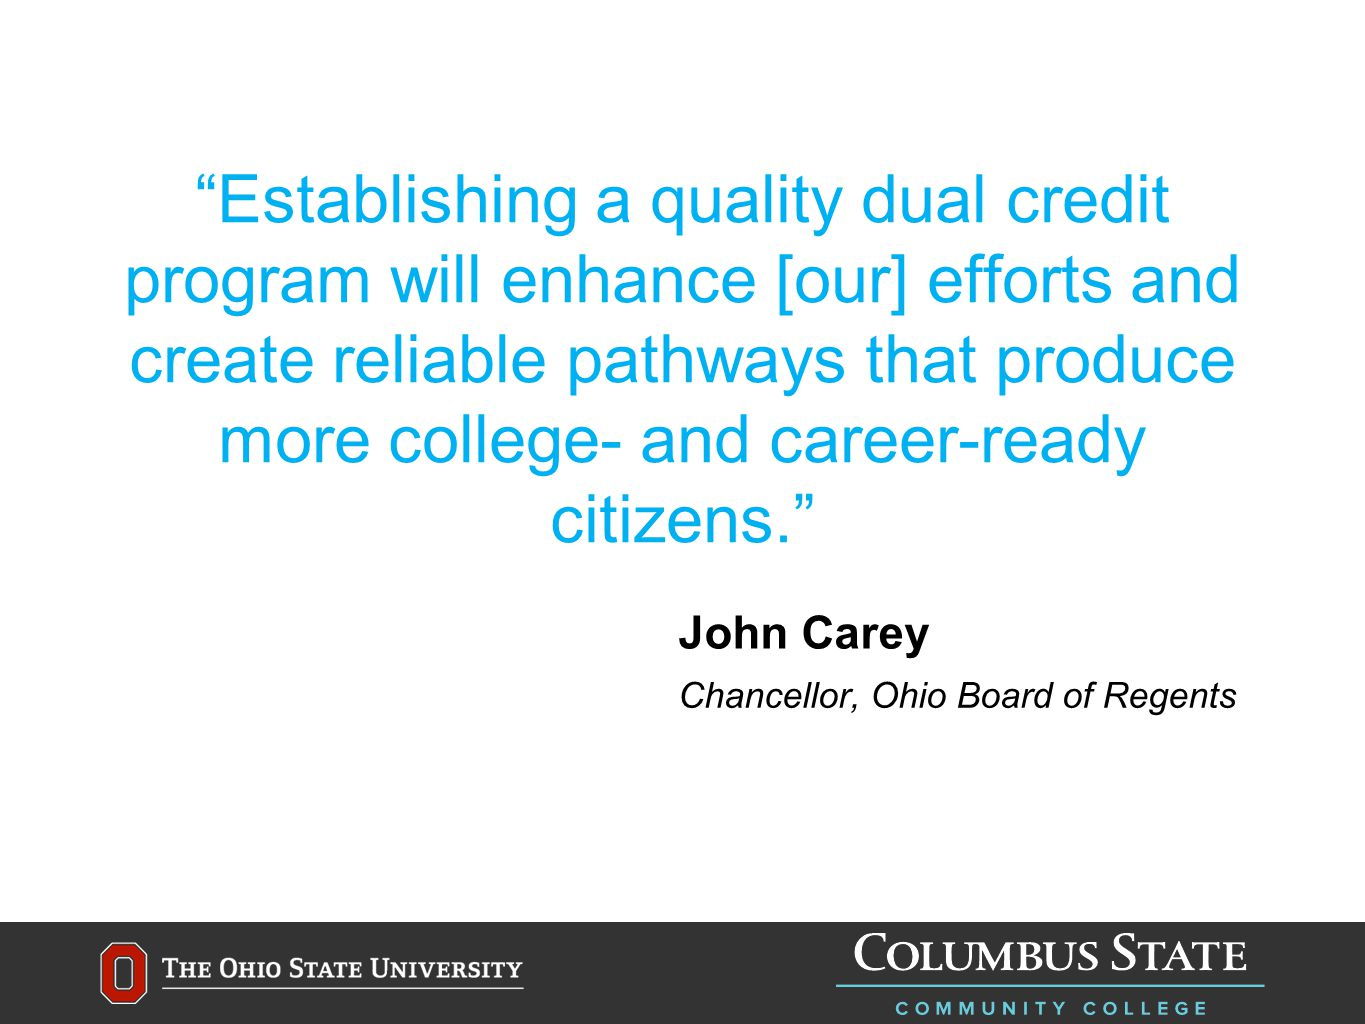 Establishing a quality dual credit program will enhance [our] efforts and create reliable pathways that produce more college- and career-ready citizens. John Carey Chancellor, Ohio Board of Regents